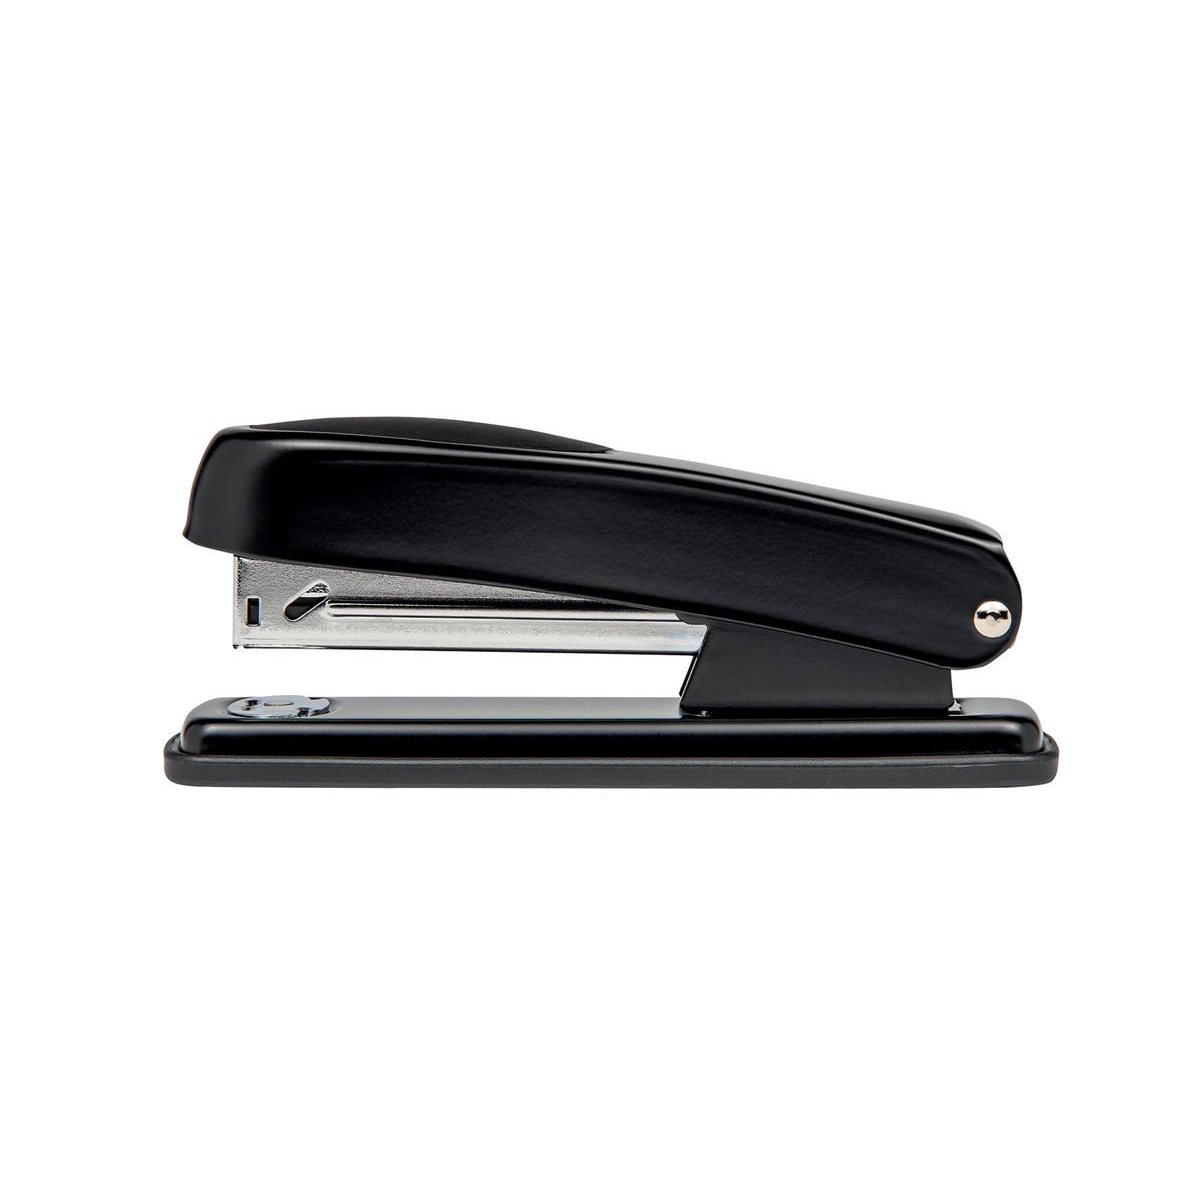 Long Arm Staplers 5 Star Office Metal Half Strip Stapler Soft Grip 20 Sheet Capacity Takes 26/6 Staples Black